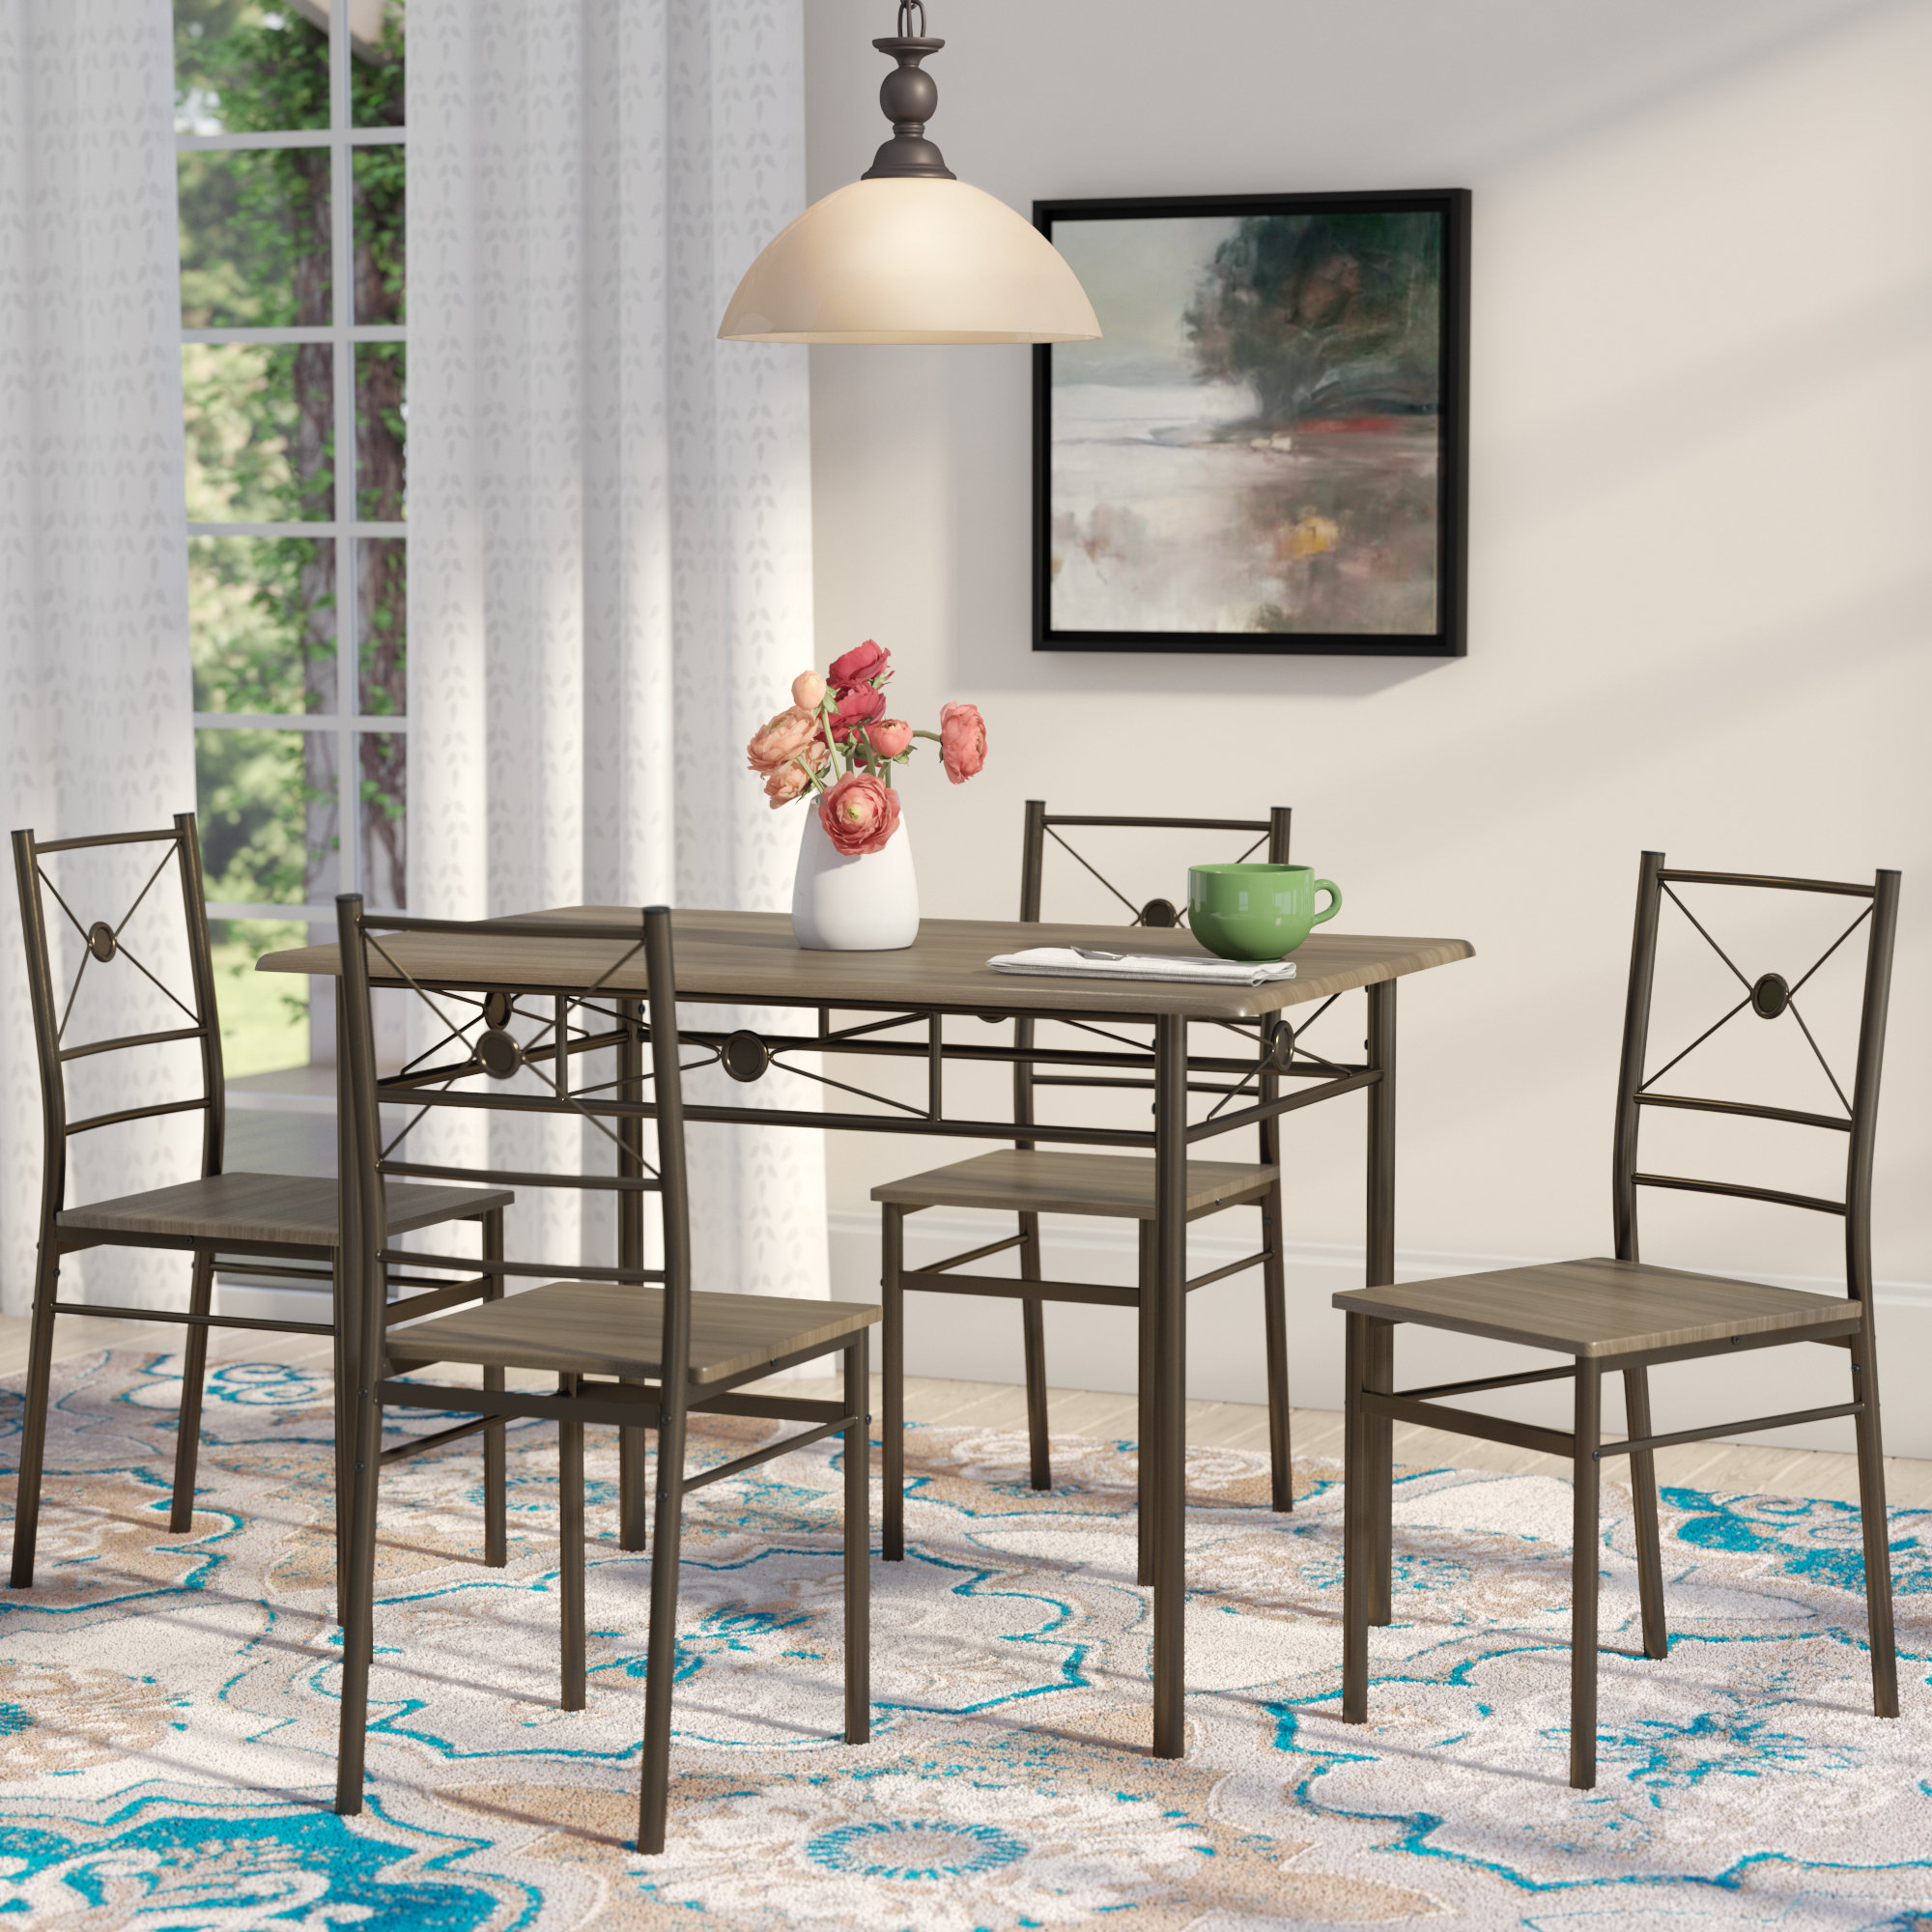 Kieffer 5 Piece Dining Set Inside 2017 Taulbee 5 Piece Dining Sets (View 7 of 20)